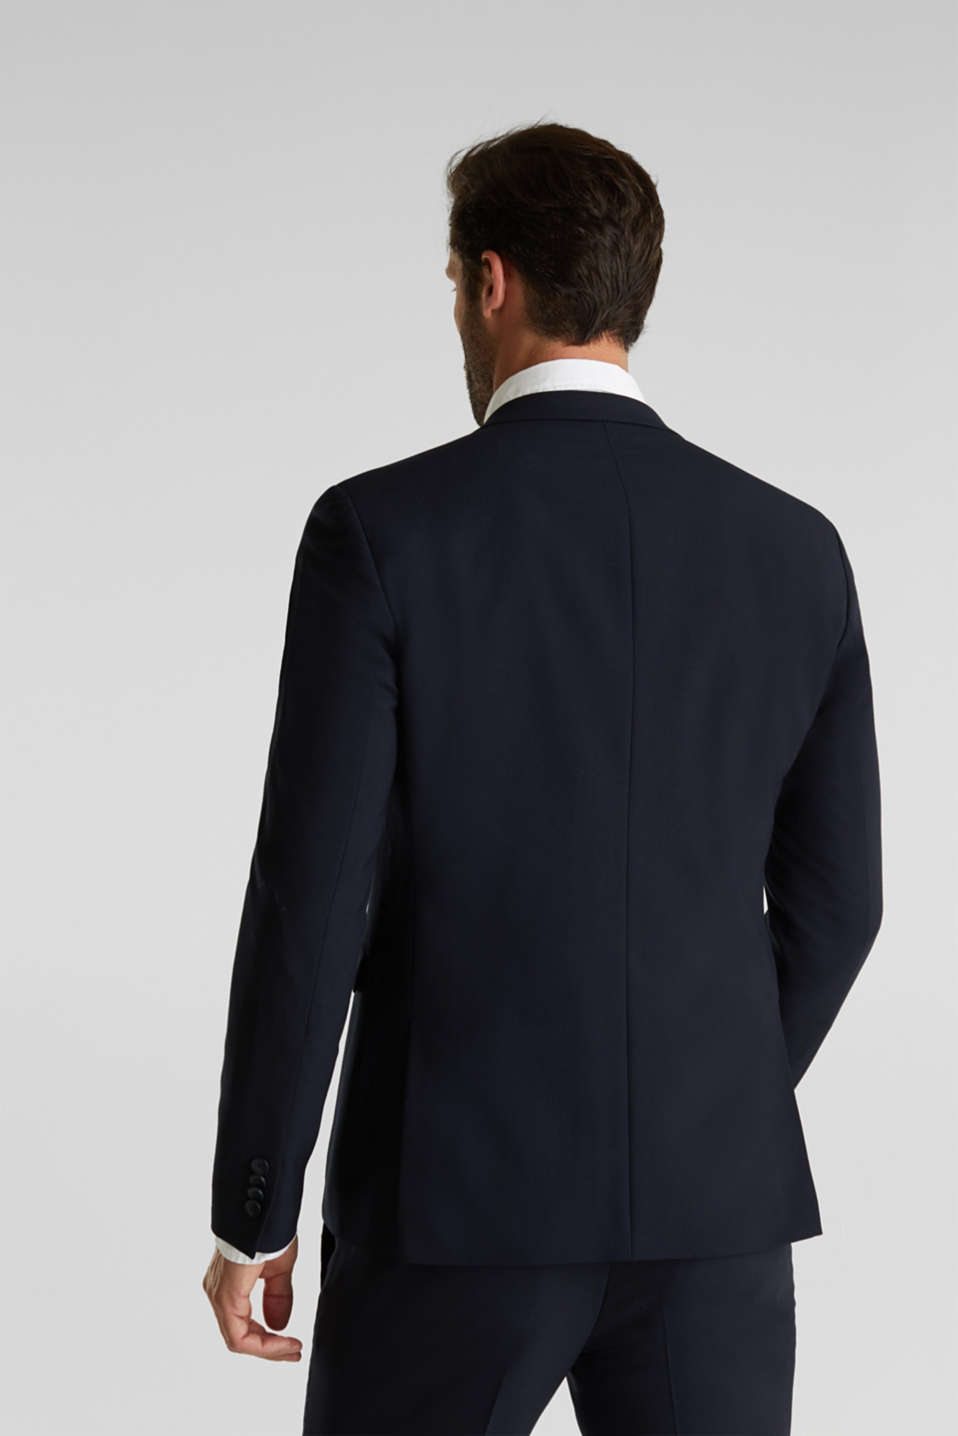 ACTIVE SUIT tailored jacket, wool blend, DARK BLUE, detail image number 3